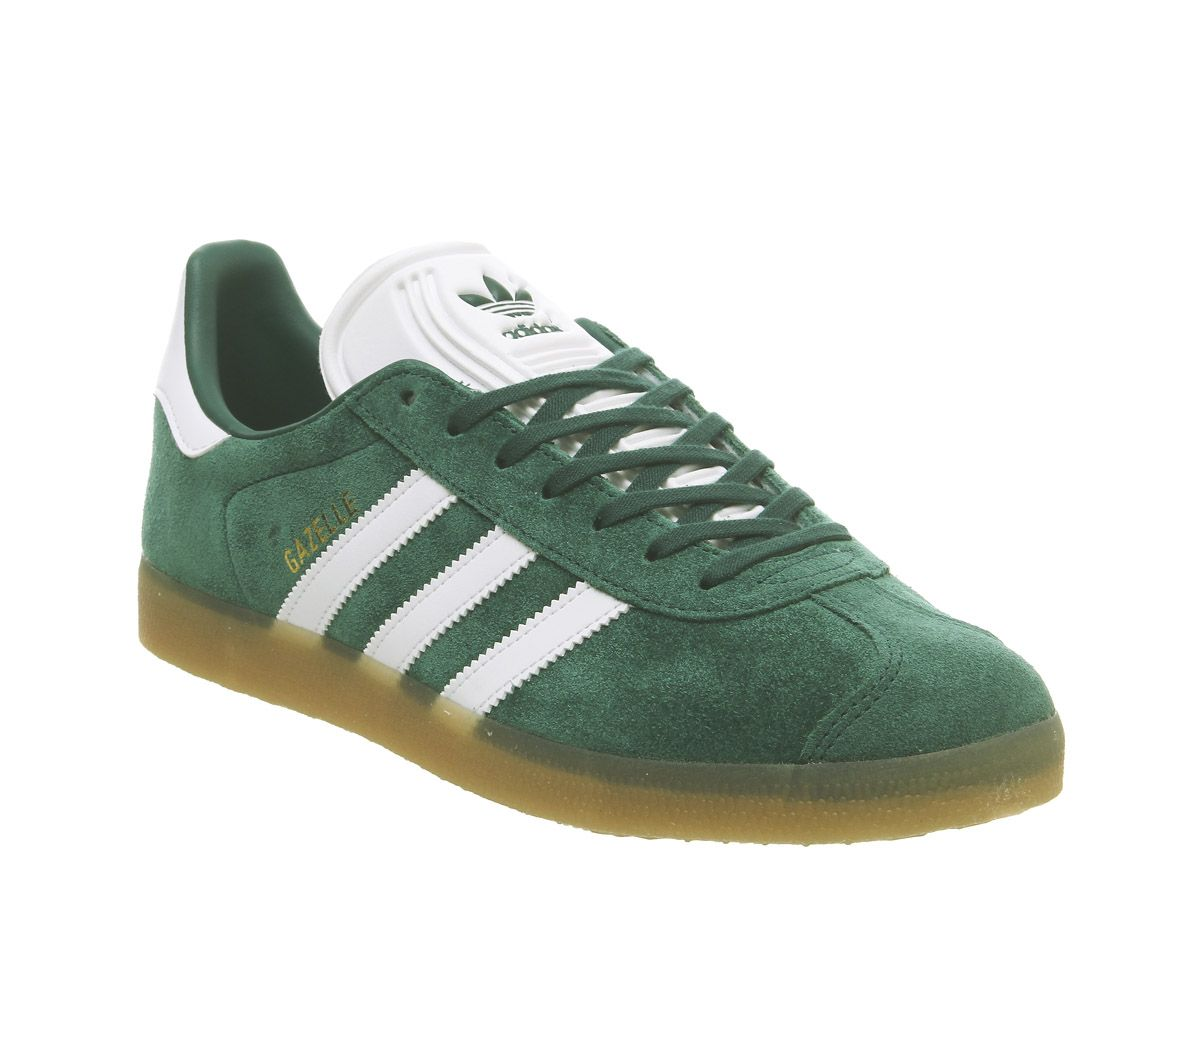 Details zu Adidas Gazelle Trainers Collegiate Green White Gum Trainers Shoes